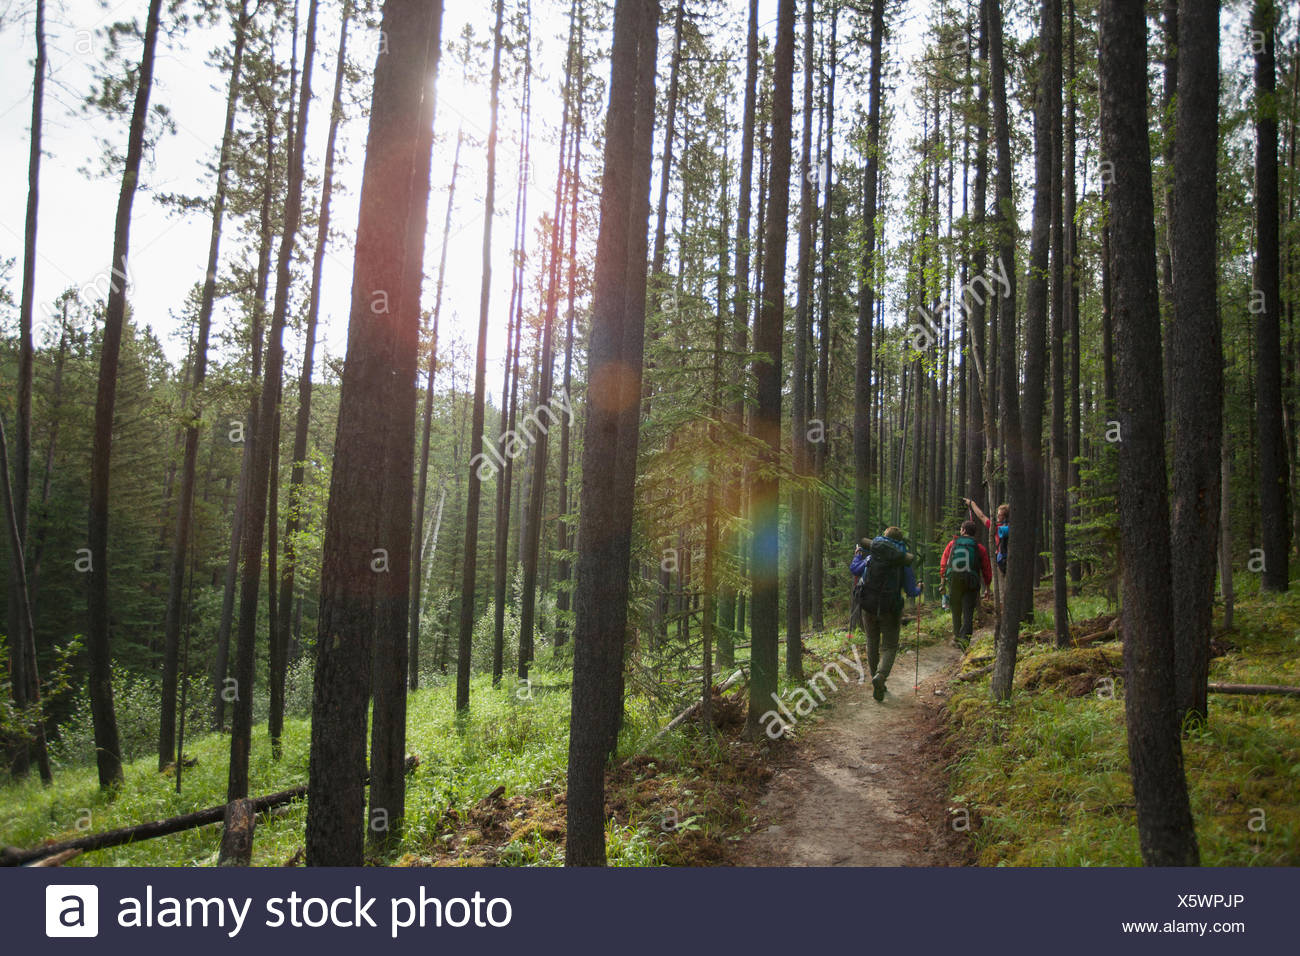 view from behind of three backpackers on a woodland trail - Stock Image